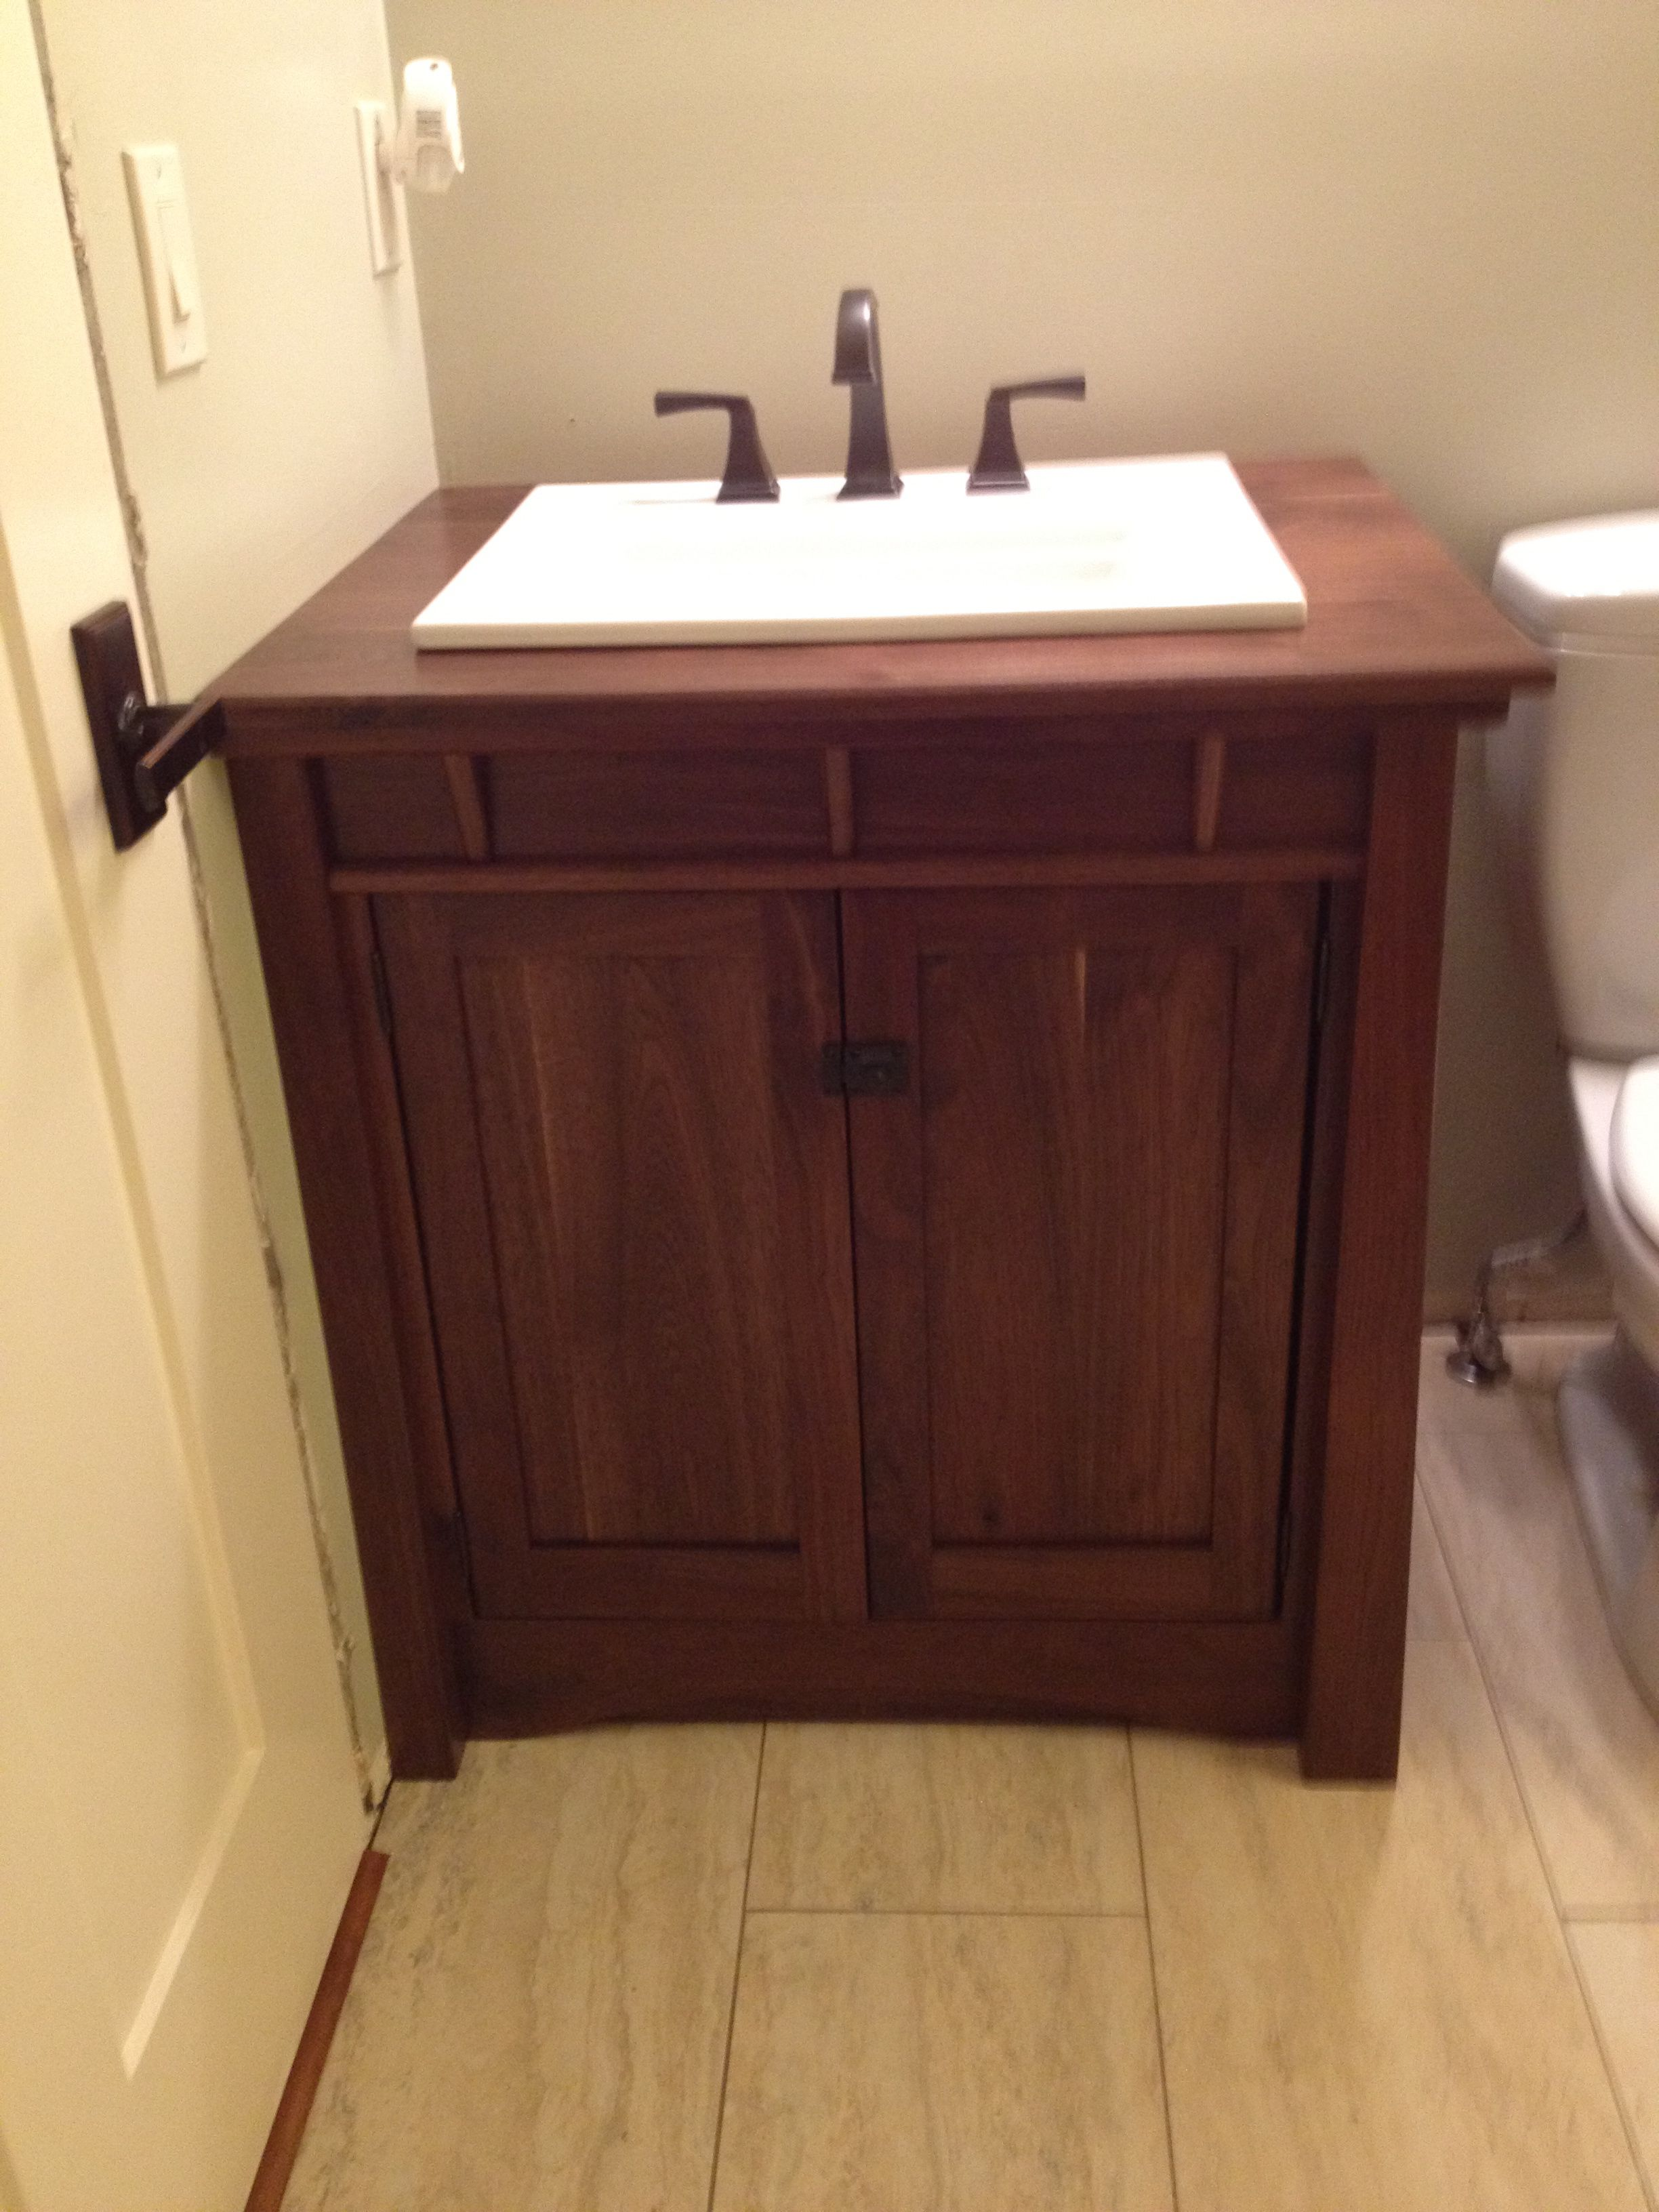 New Custom Arts Crafts Craftsman Vanity I Designed